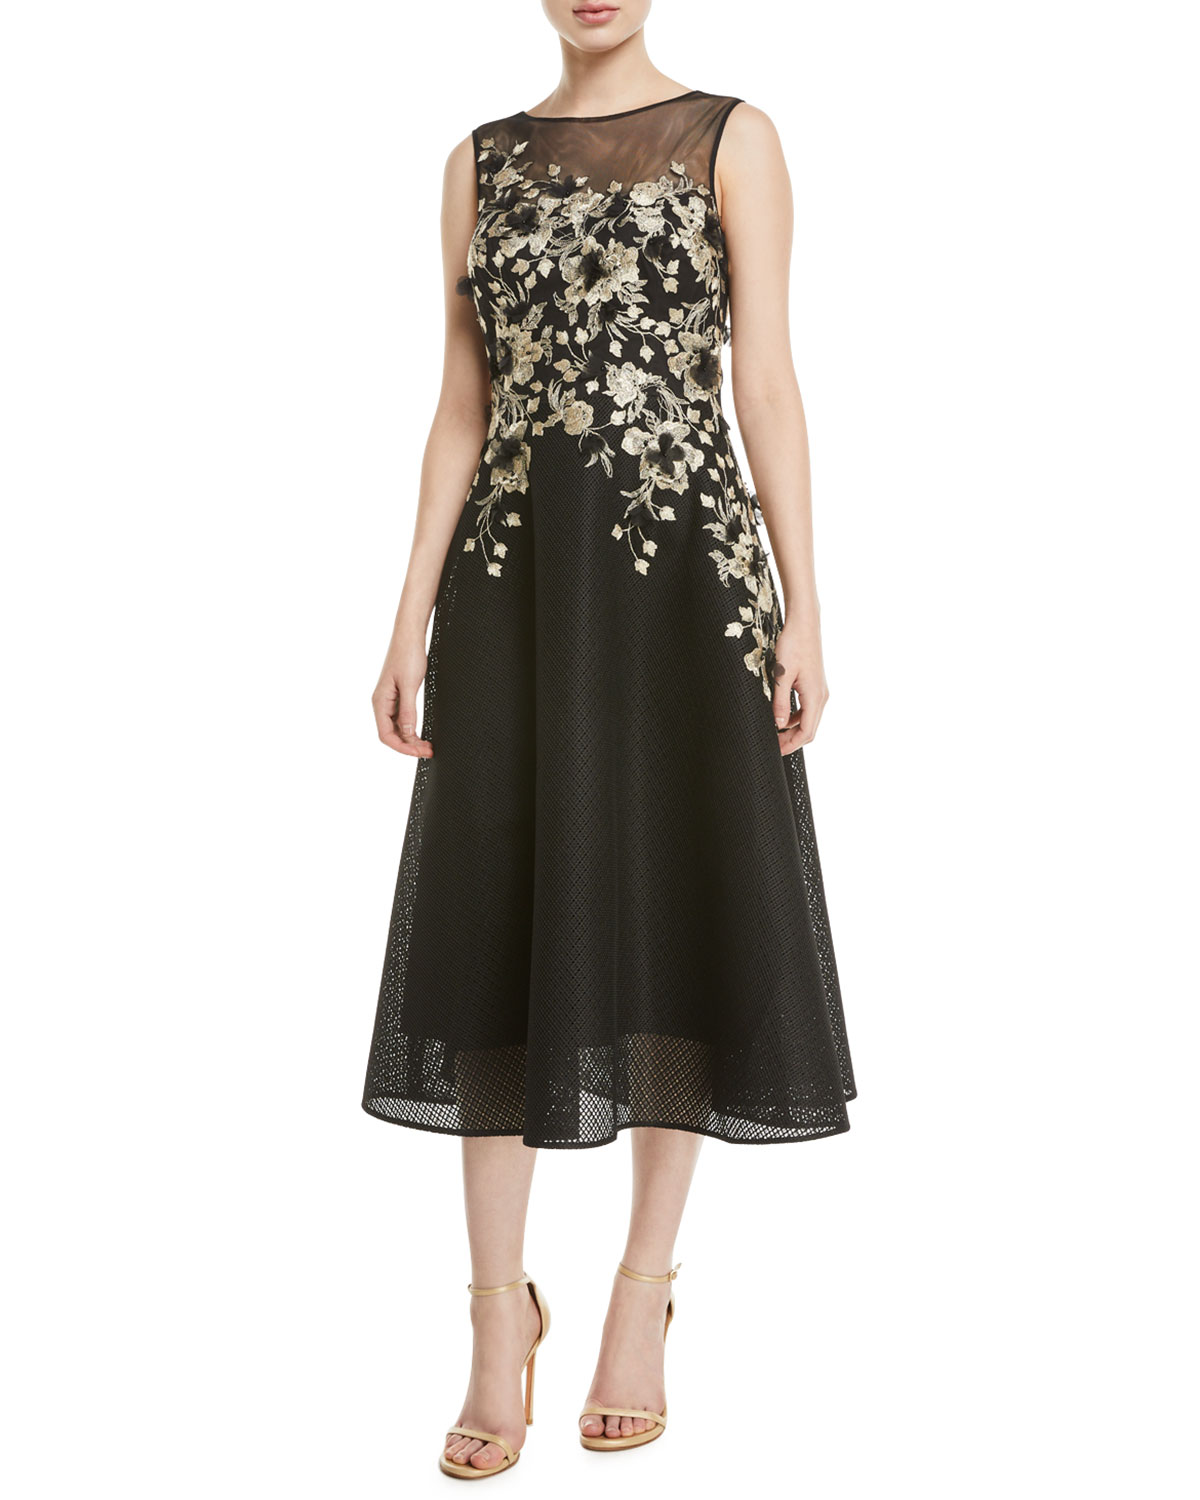 273256110ee28e Rickie Freeman for Teri Jon Sleeveless Embroidered Dance Dress ...